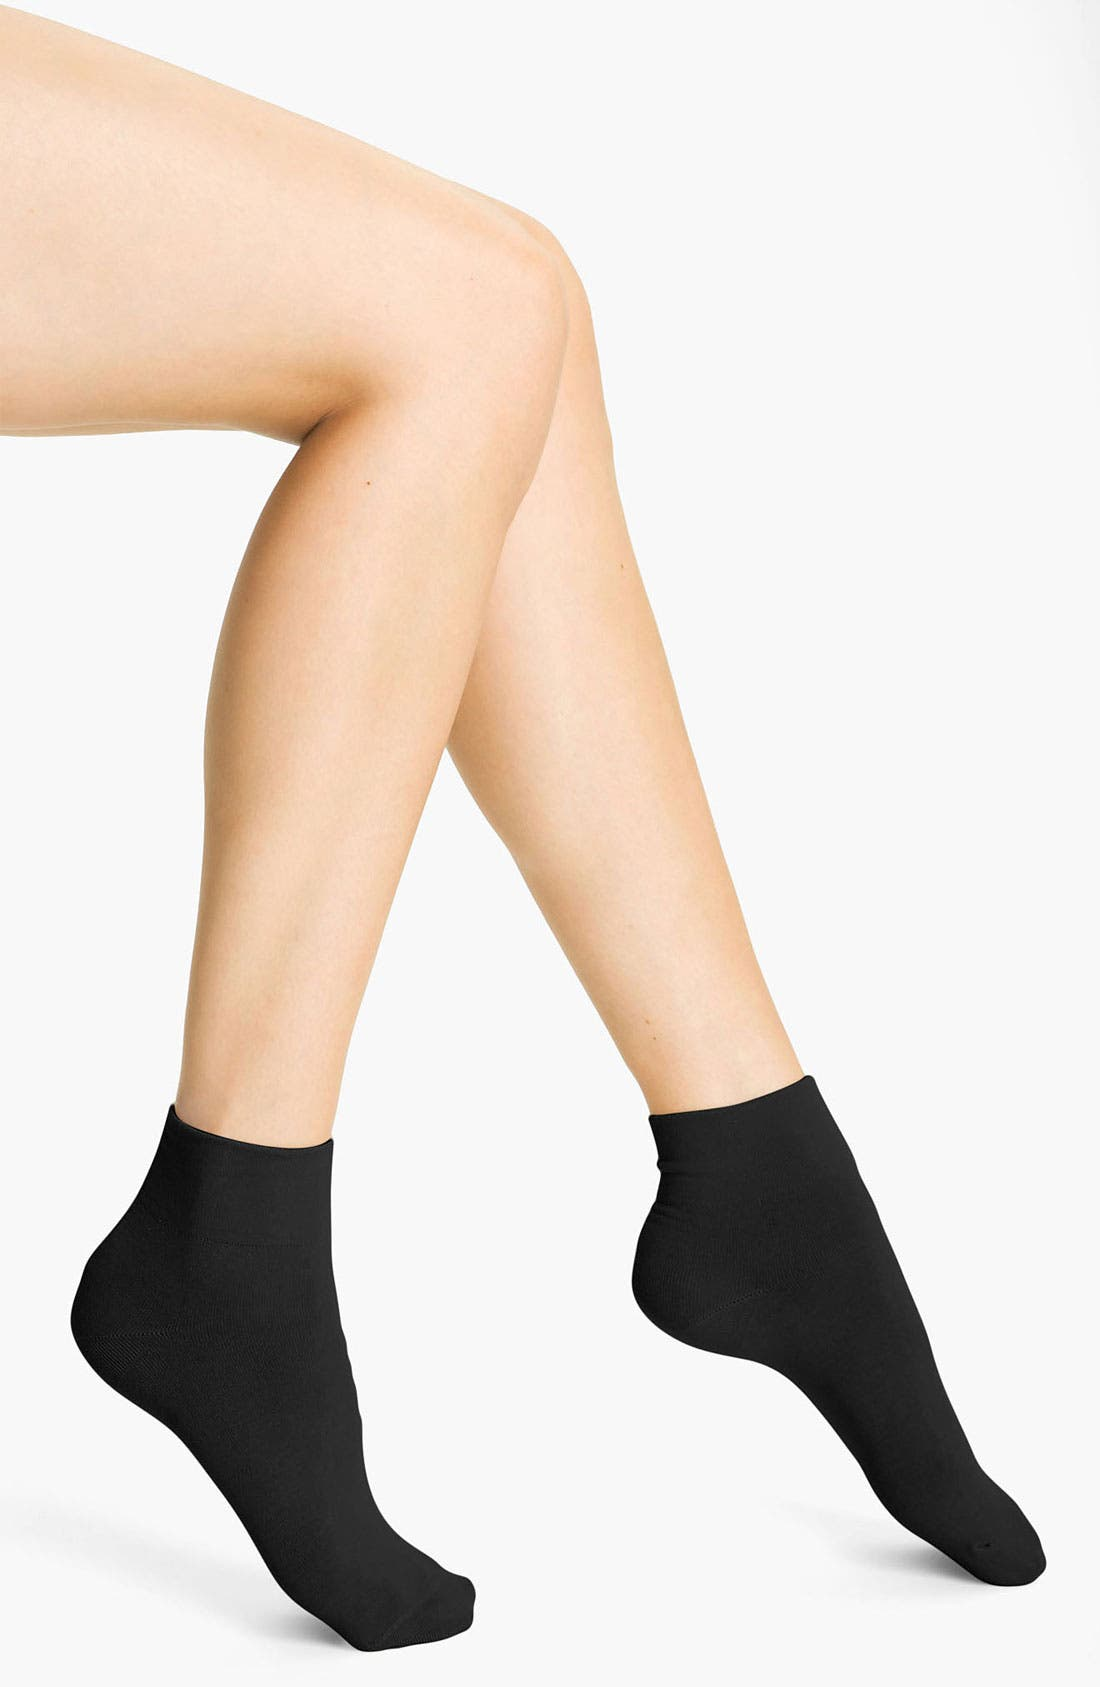 Alternate Image 1 Selected - Hue 'Cotton Body' Socks (3 for $18)